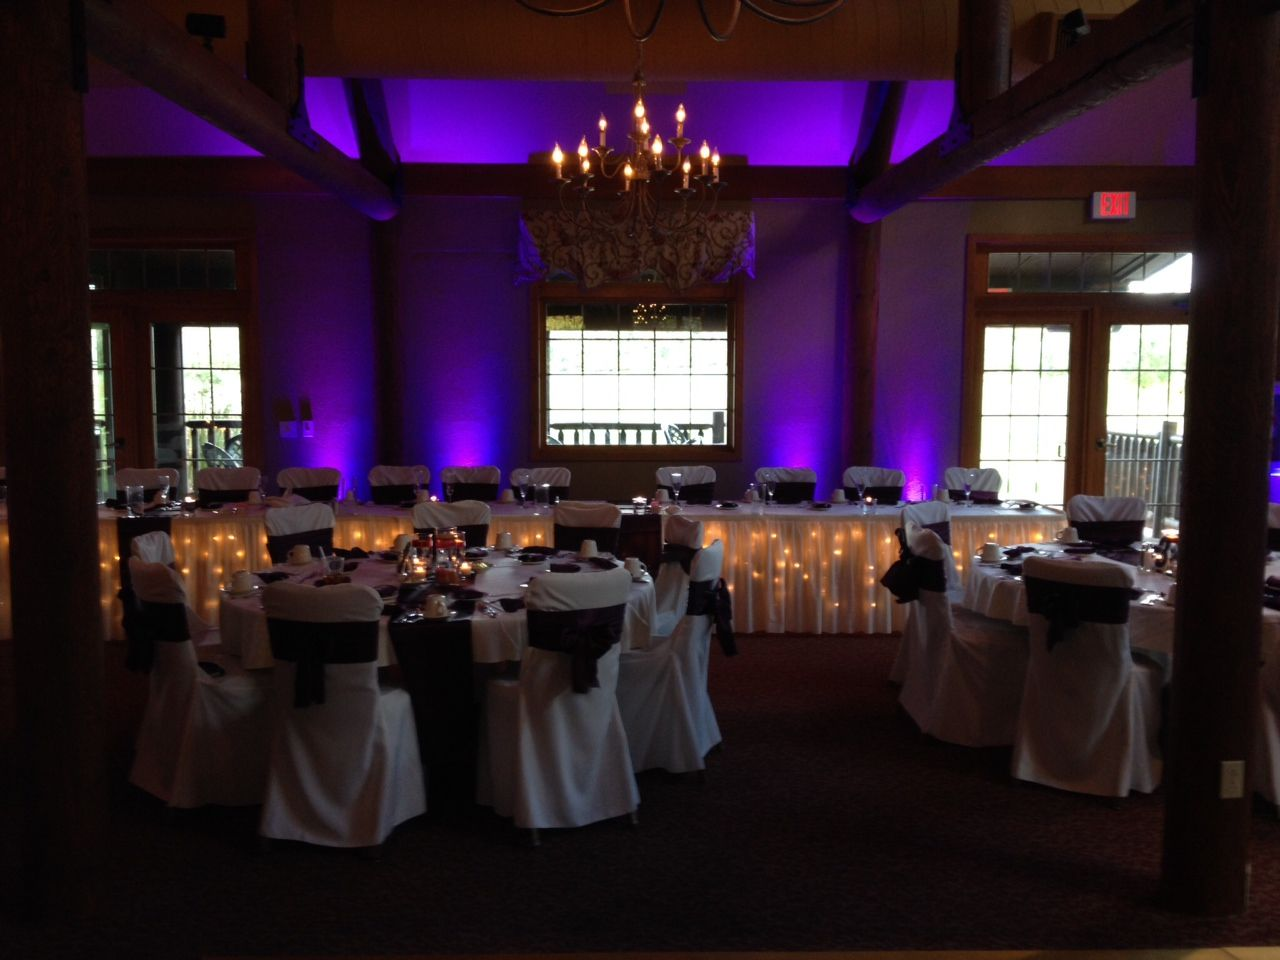 Chair Cover Rentals Peterborough Motorized Chairs For Elderly Purple Head Table Uplighting At The Wild Rock Clubhouse